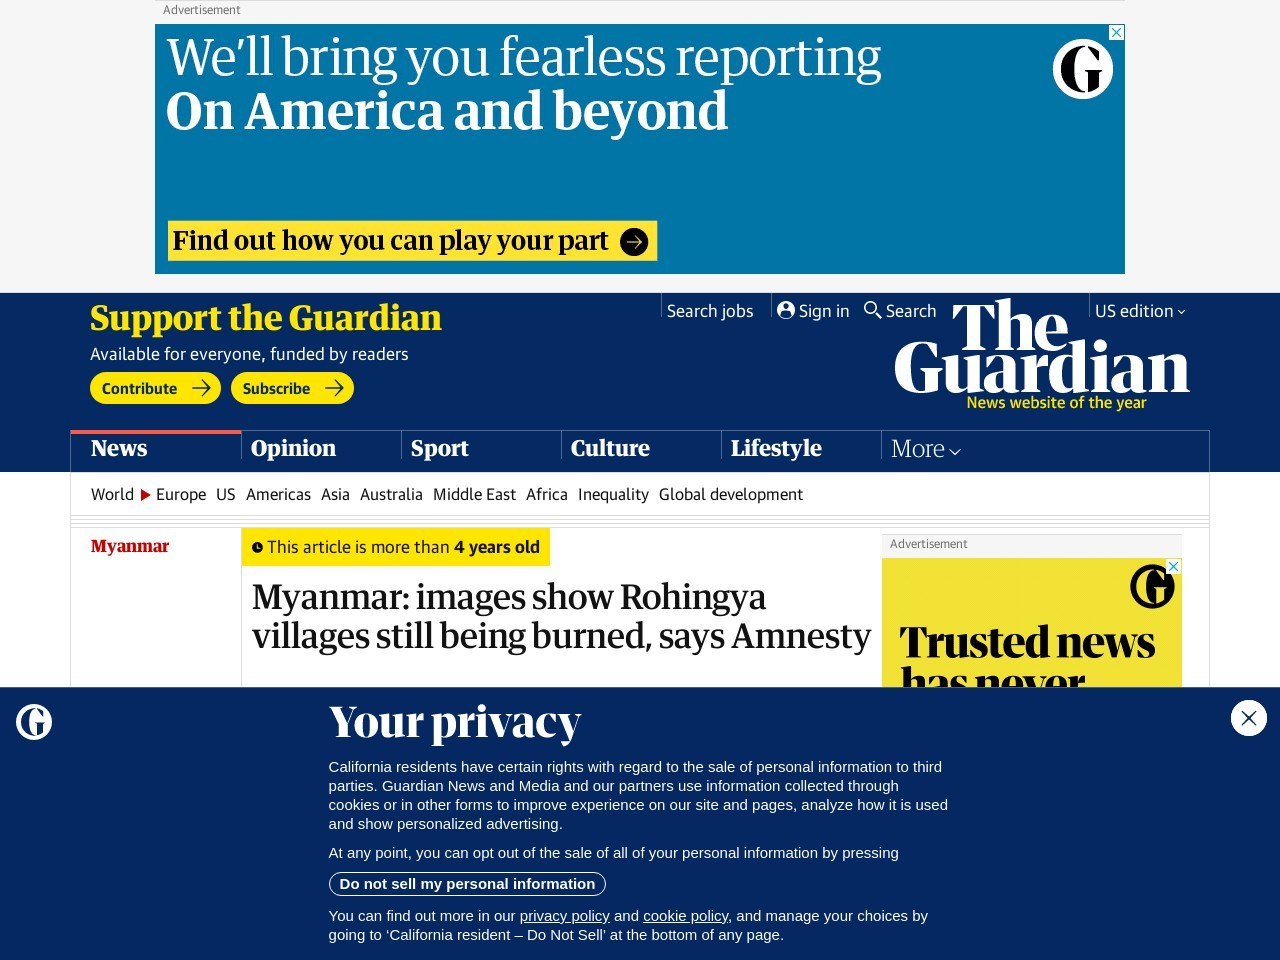 Myanmar: images show Rohingya villages still being burned, says Amnesty